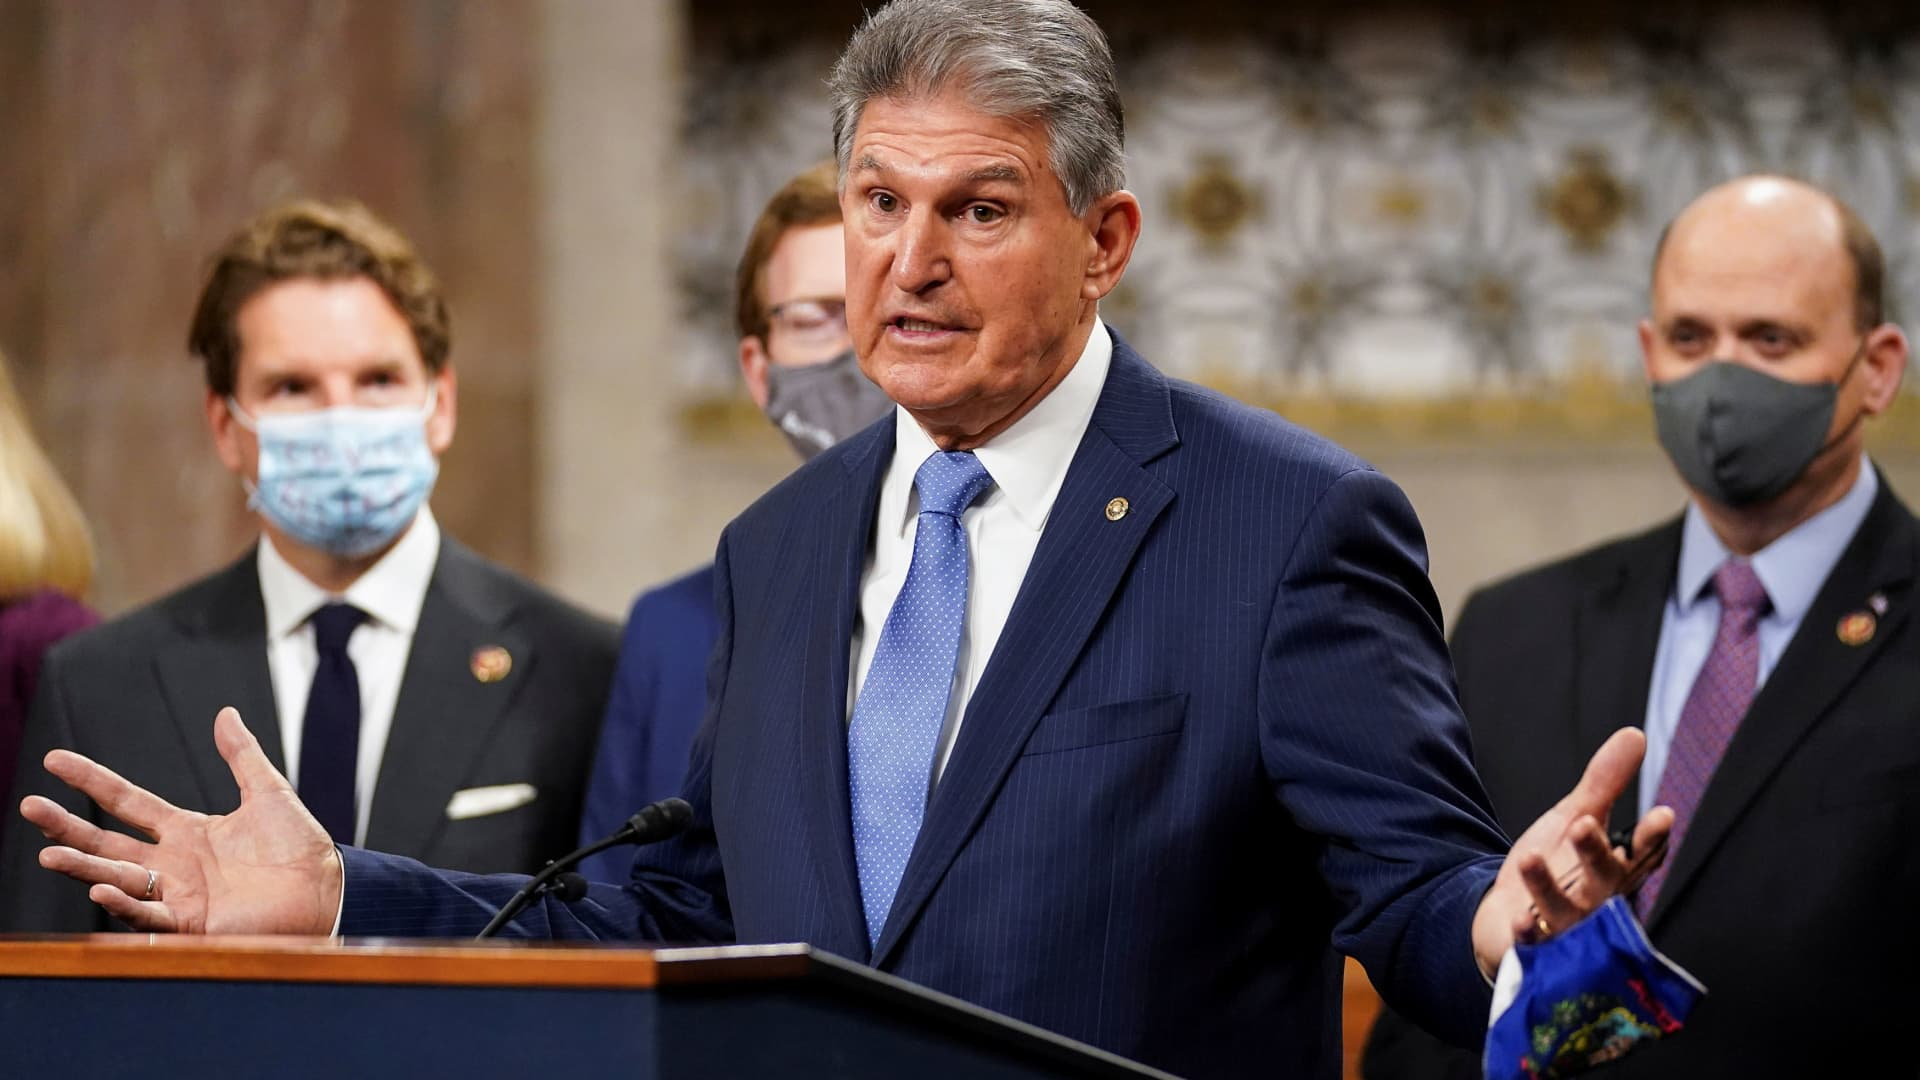 Senator Joe Manchin (D-WVA) removes his mask to speak as bipartisan members of the Senate and House gather to announce a framework for fresh coronavirus disease (COVID-19) relief legislation at a news conference on Capitol Hill in Washington, December 1, 2020.